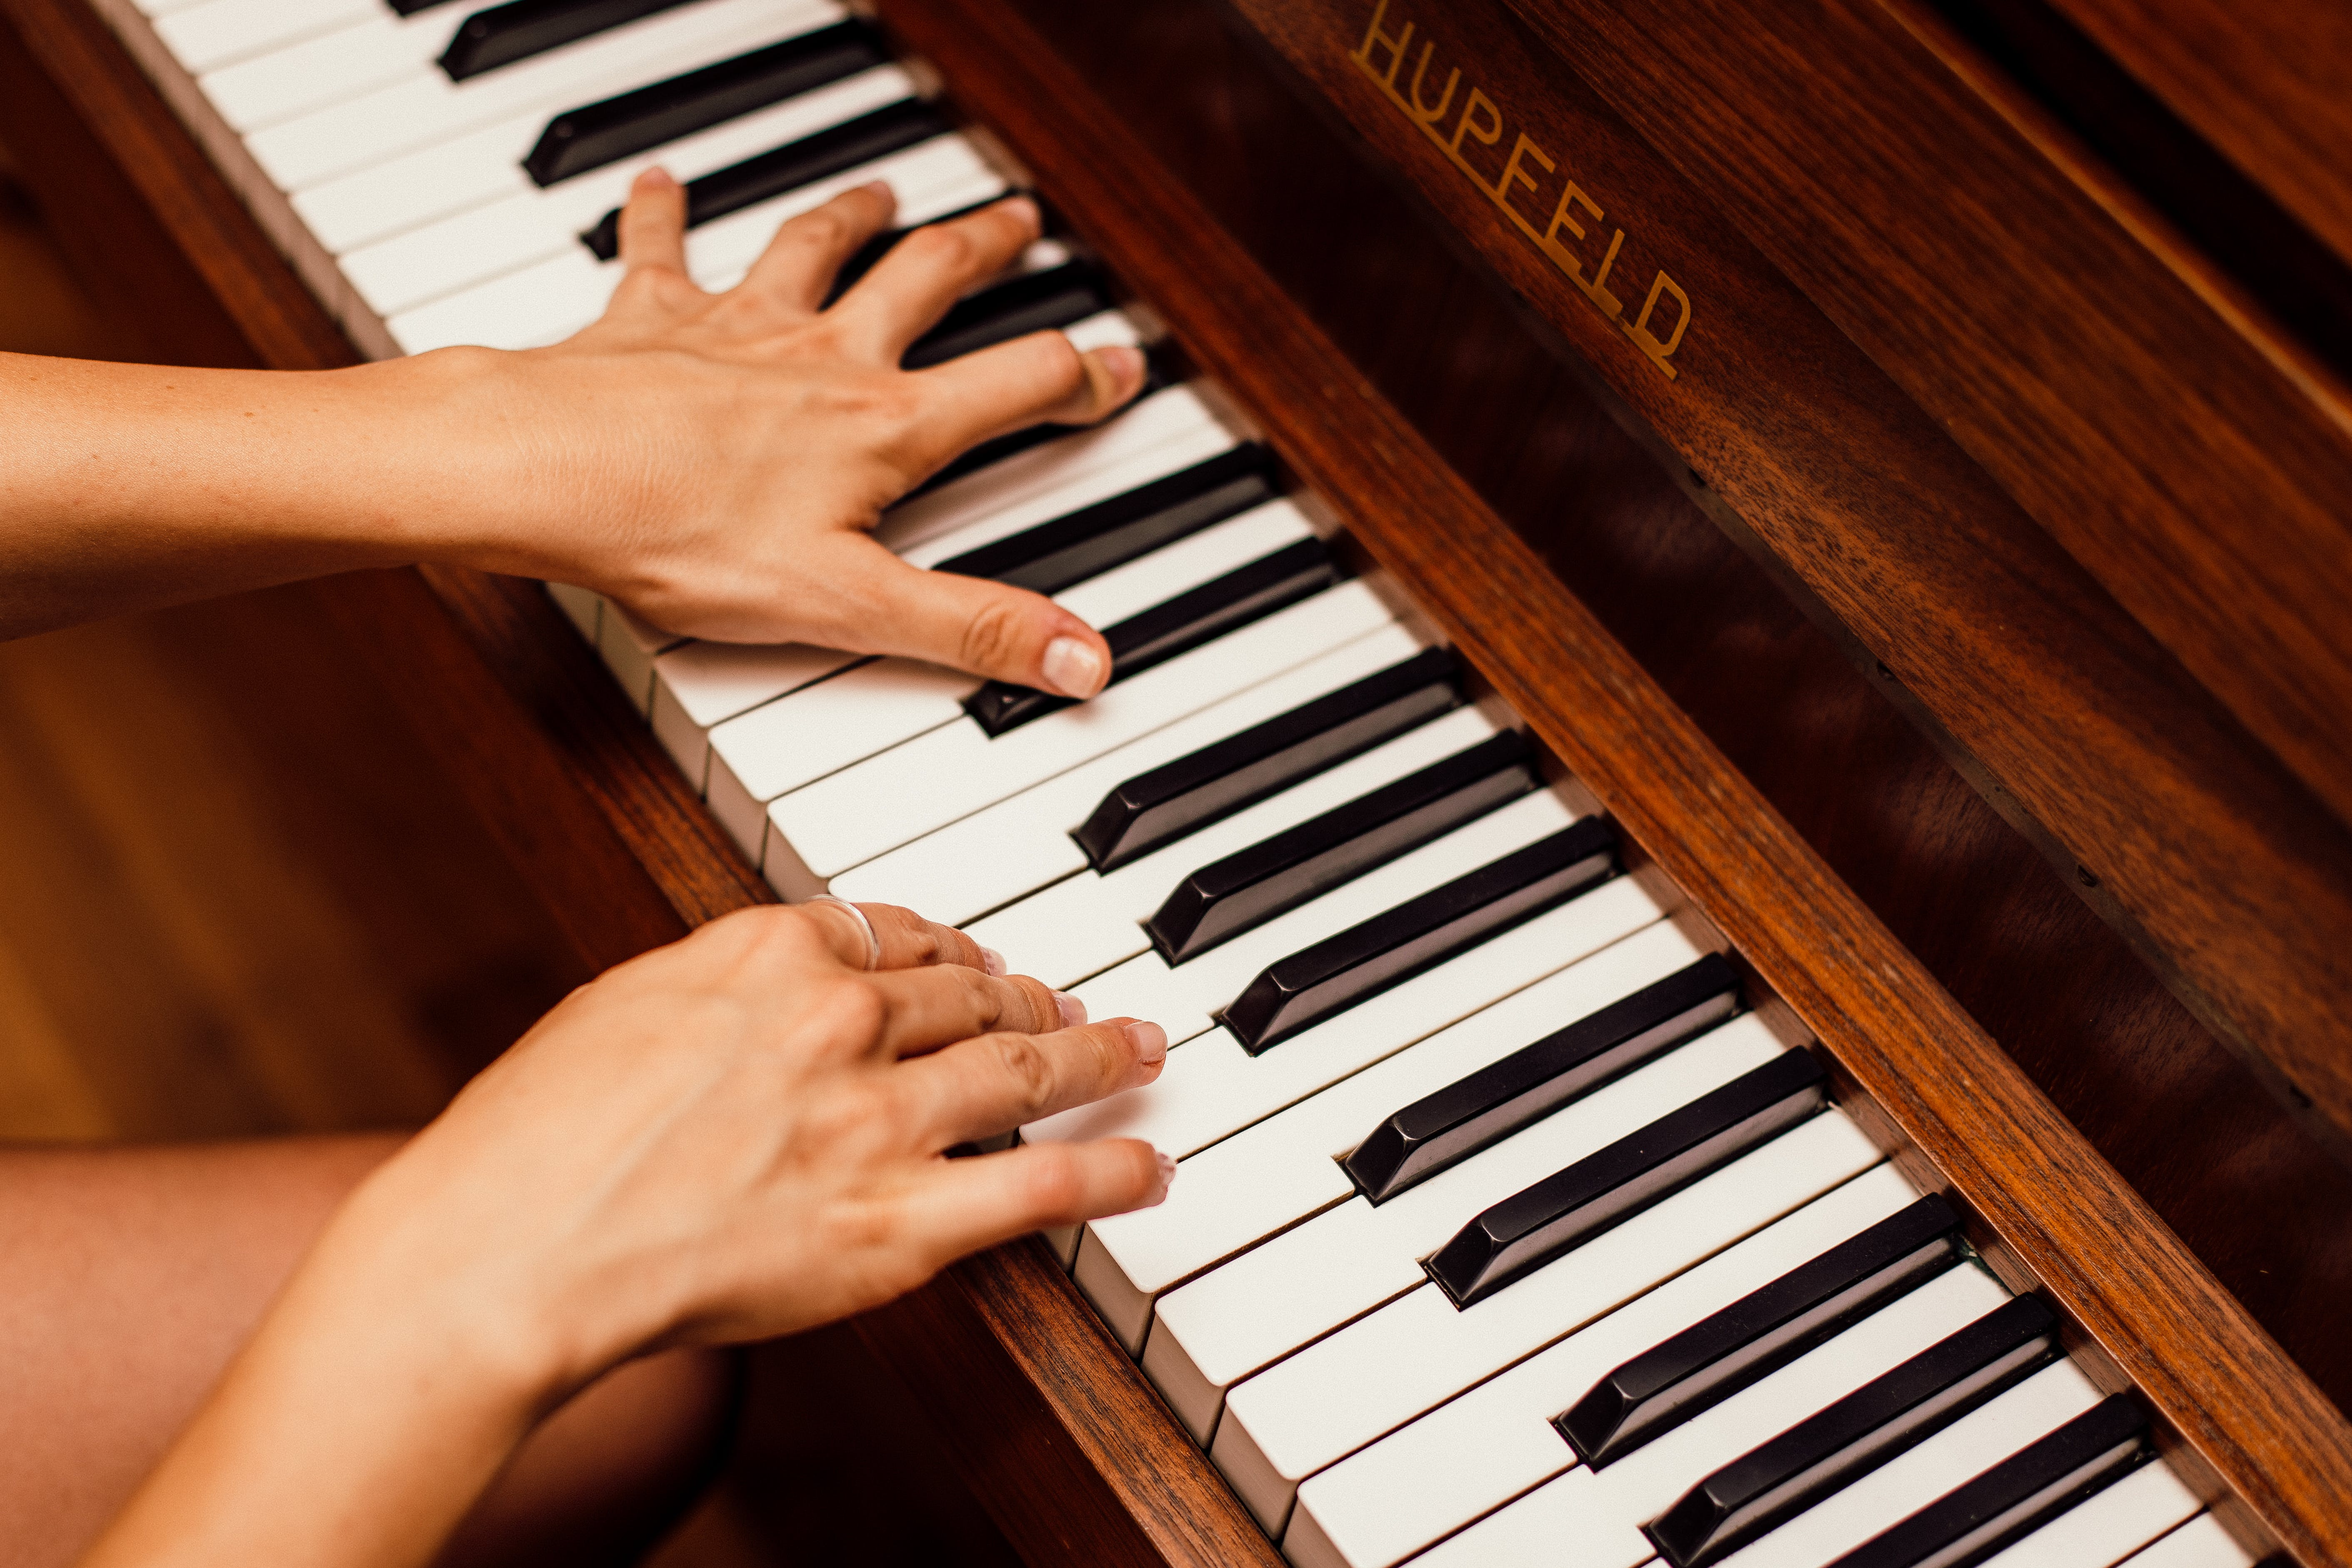 Close-Up Photo Of Person Playing Piano